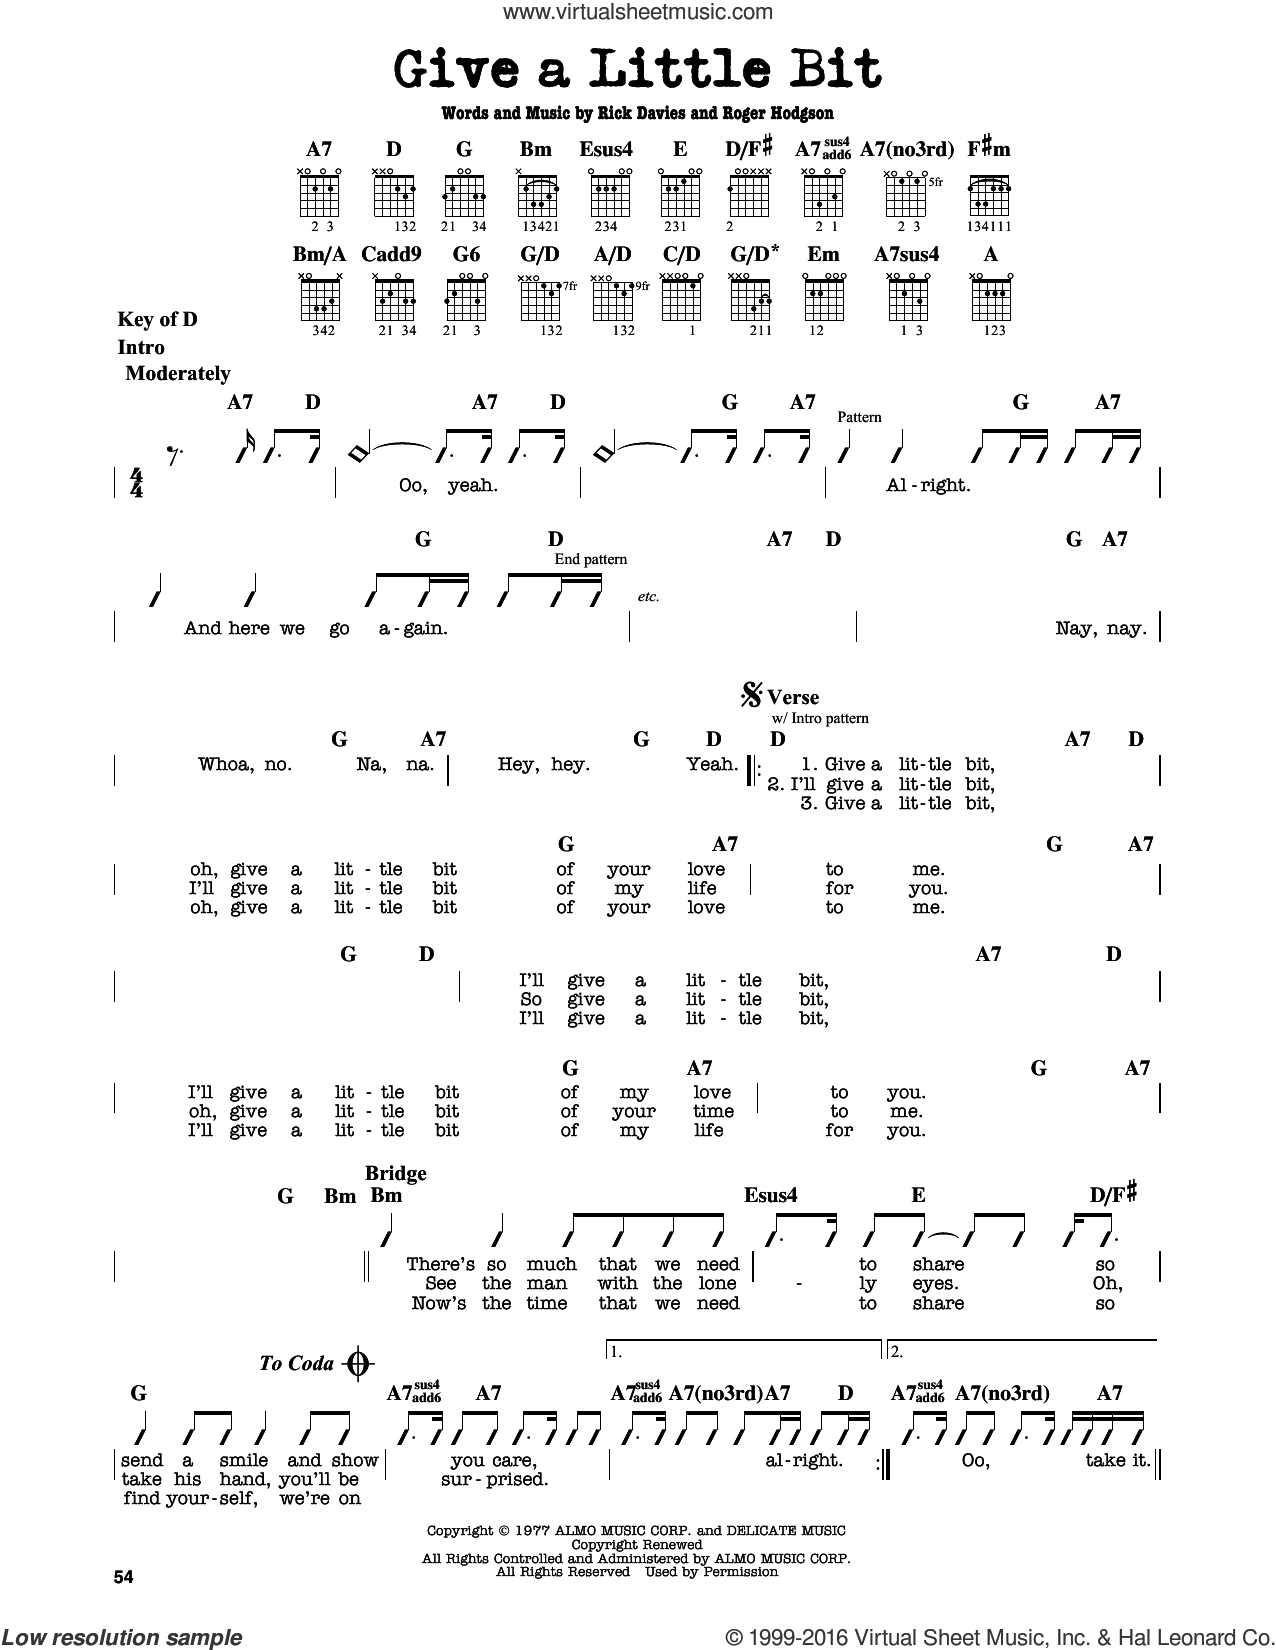 Give A Little Bit sheet music for guitar solo (lead sheet) by Roger Hodgson, Supertramp and Rick Davies. Score Image Preview.